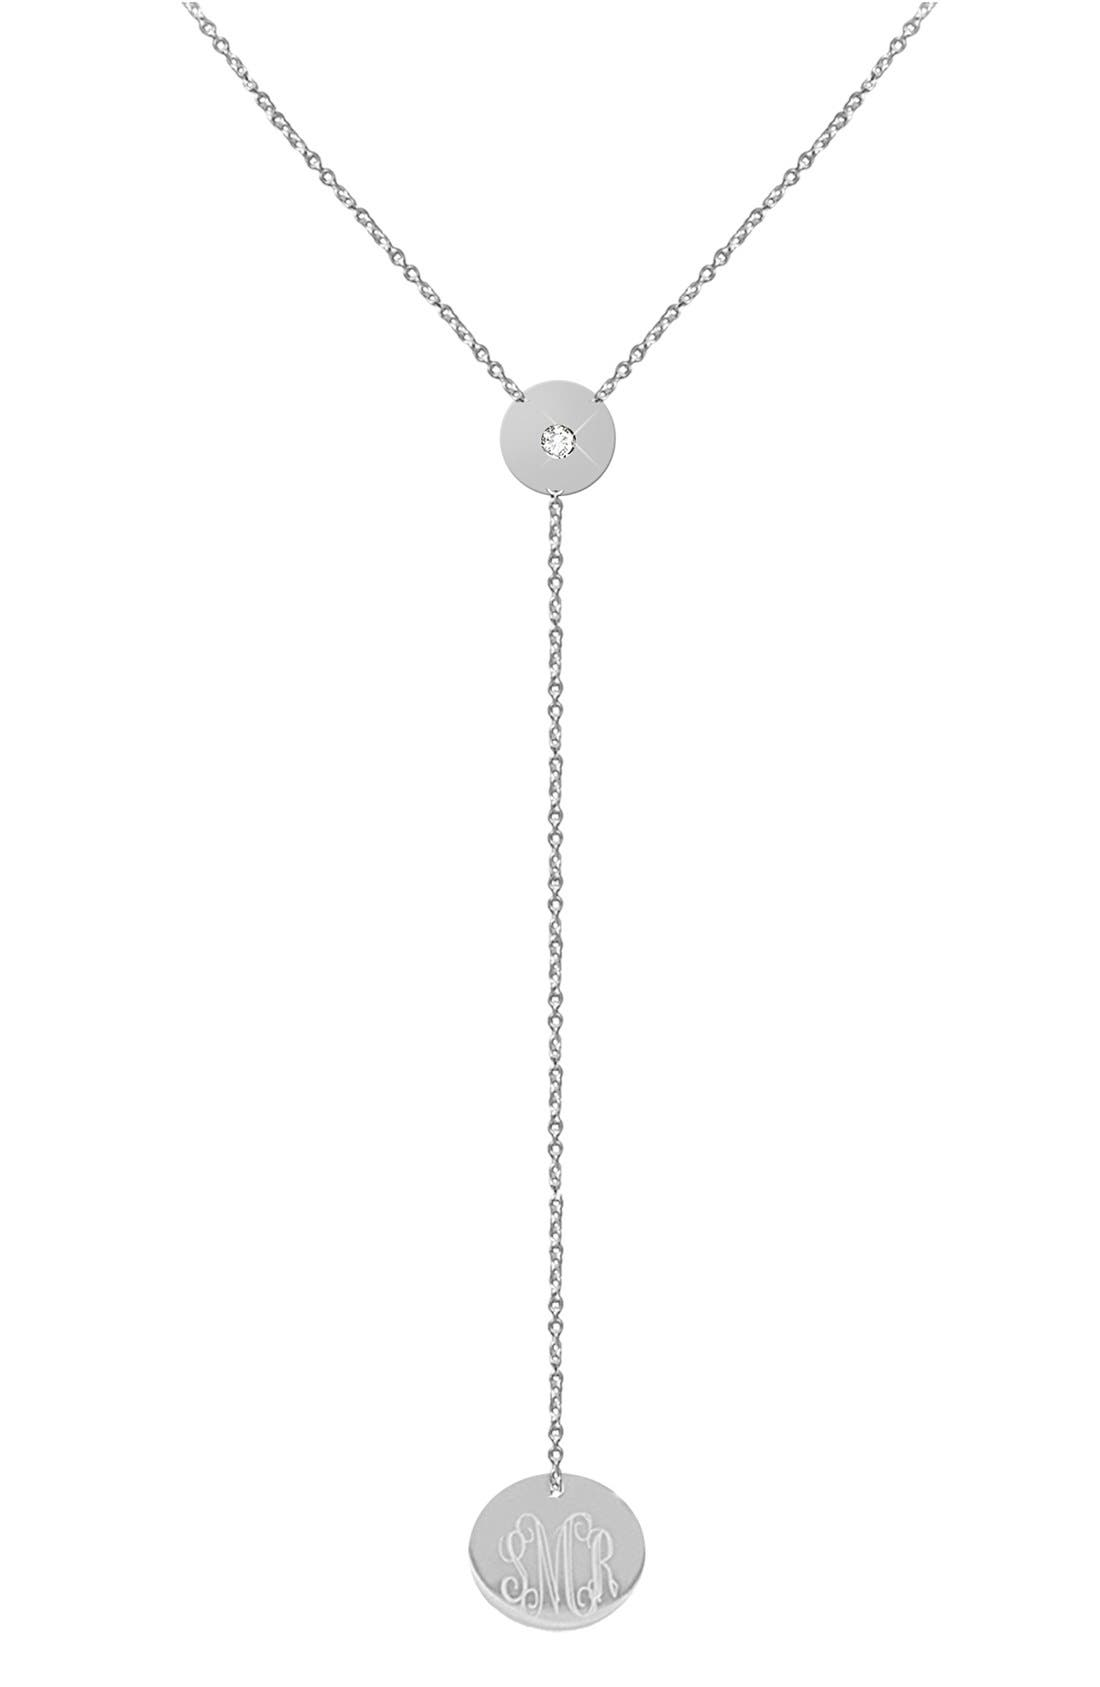 Alternate Image 1 Selected - Jane Basch Designs Diamond & Personalized Monogram Y-Necklace (Nordstrom Online Exclusive)